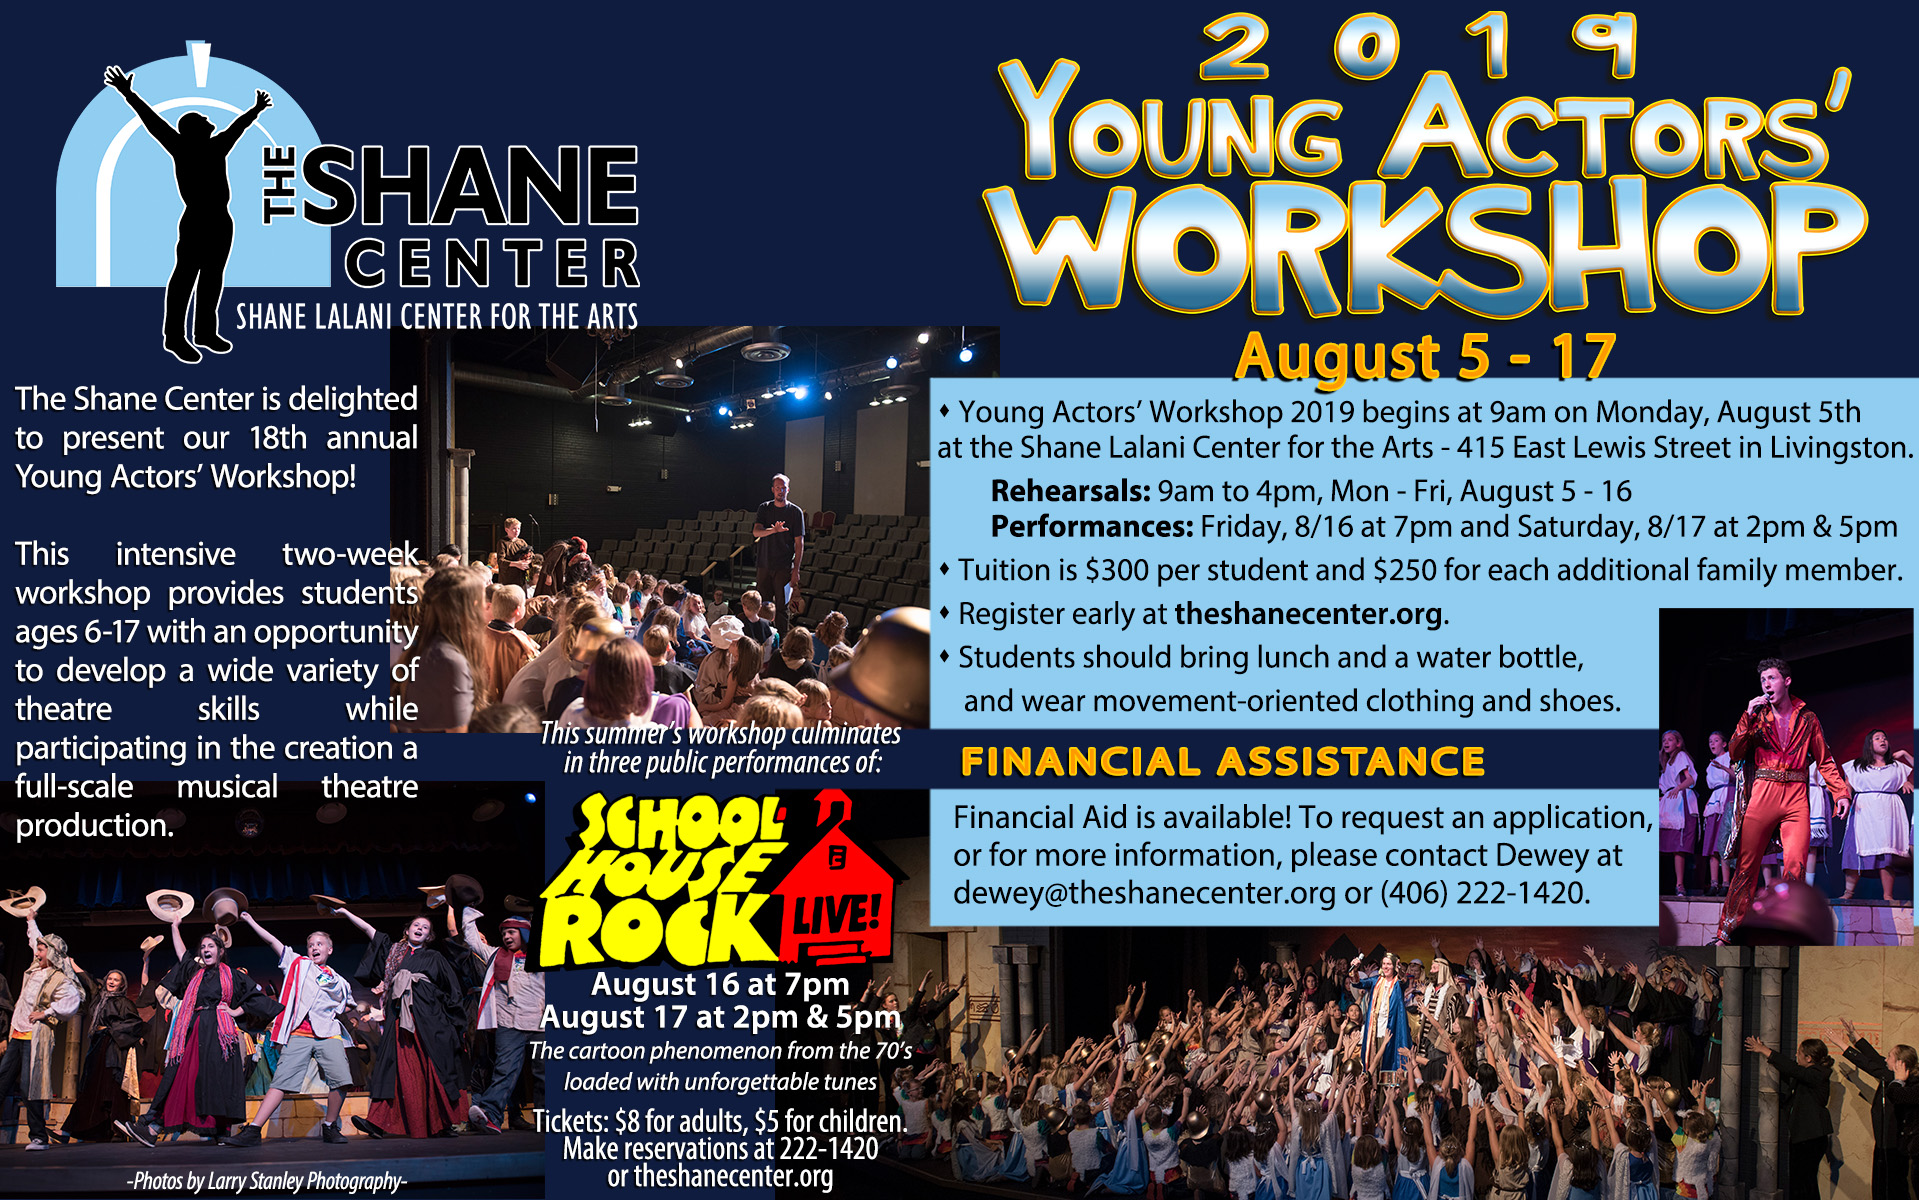 Young Actors' Workshop 2019 - Shane Lalani Center for the Arts